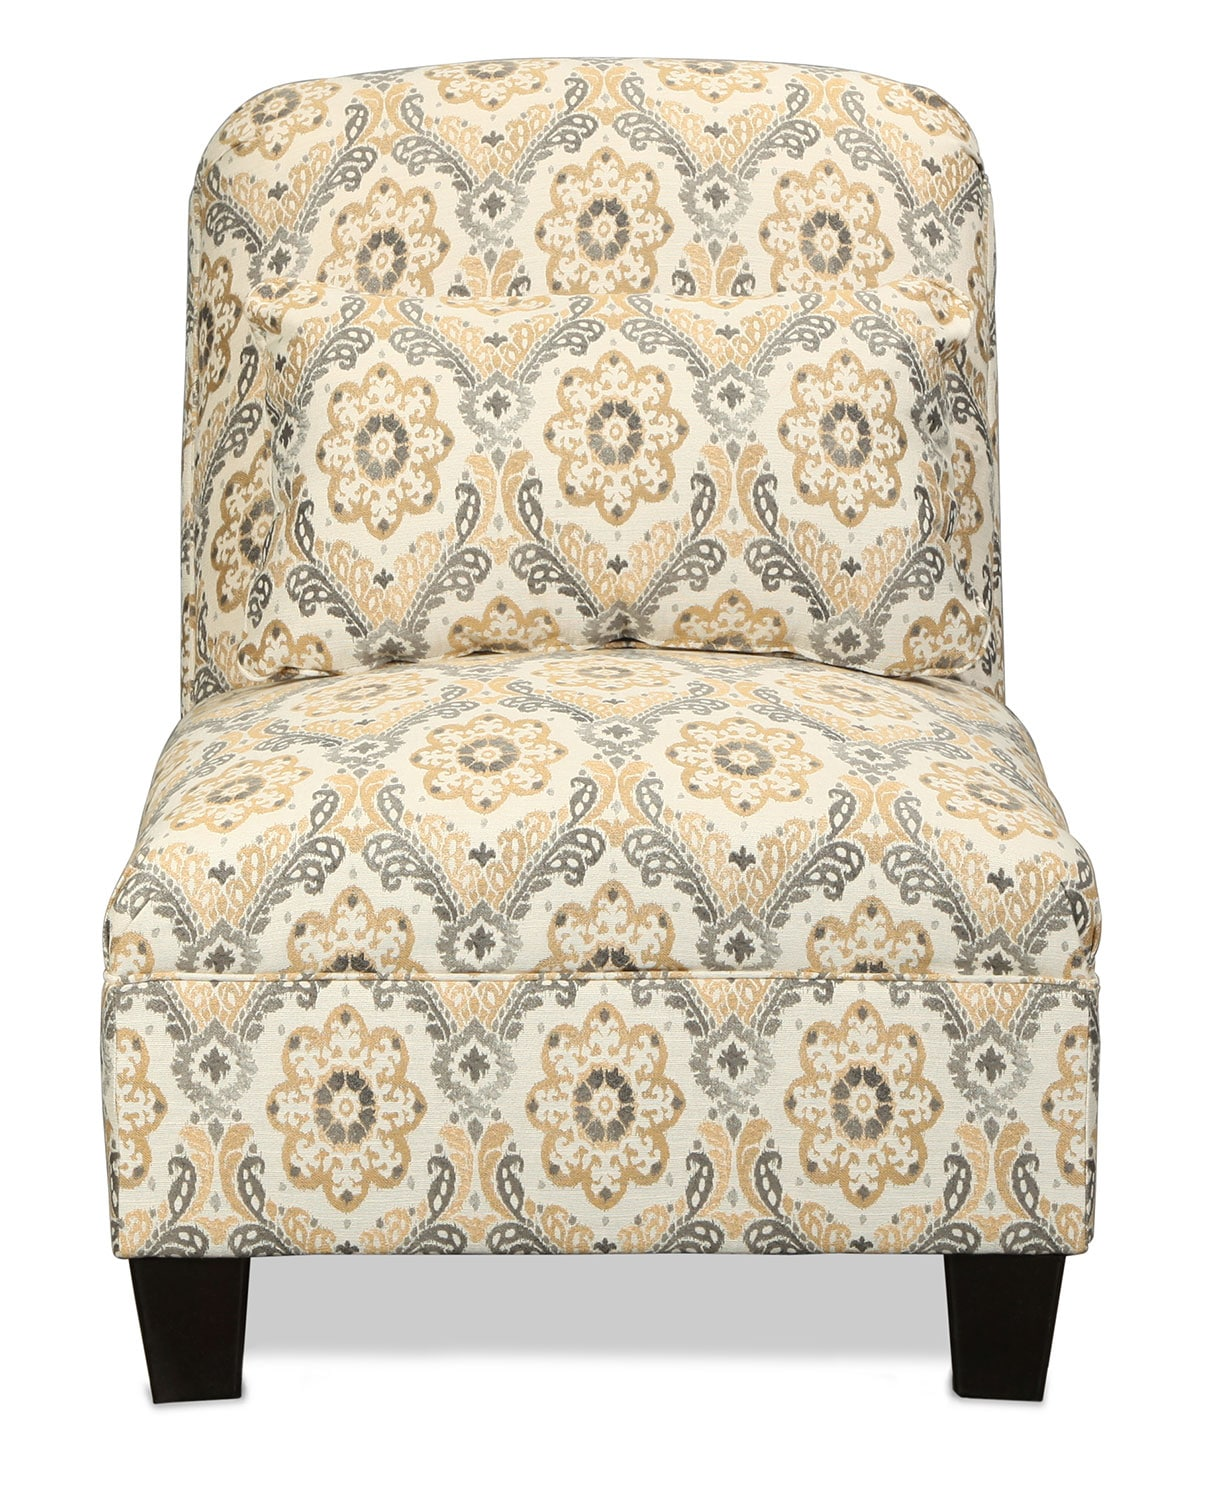 Living Room Furniture - Callie Accent Chair - Floral